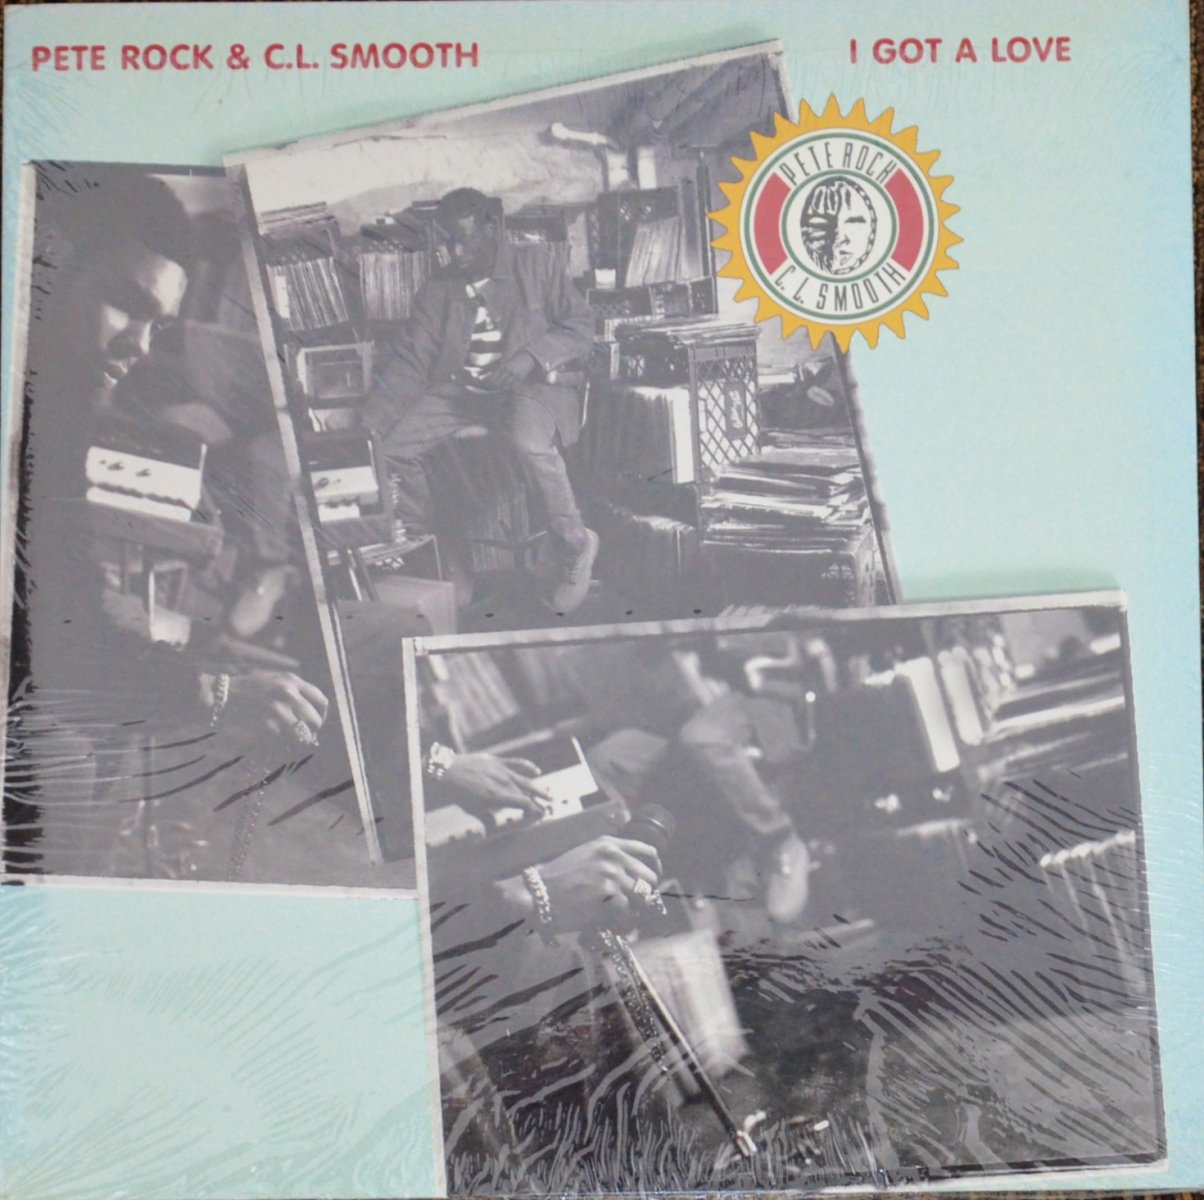 PETE ROCK & C.L. SMOOTH ‎/ I GOT A LOVE / THE MAIN INGREDIENT (12